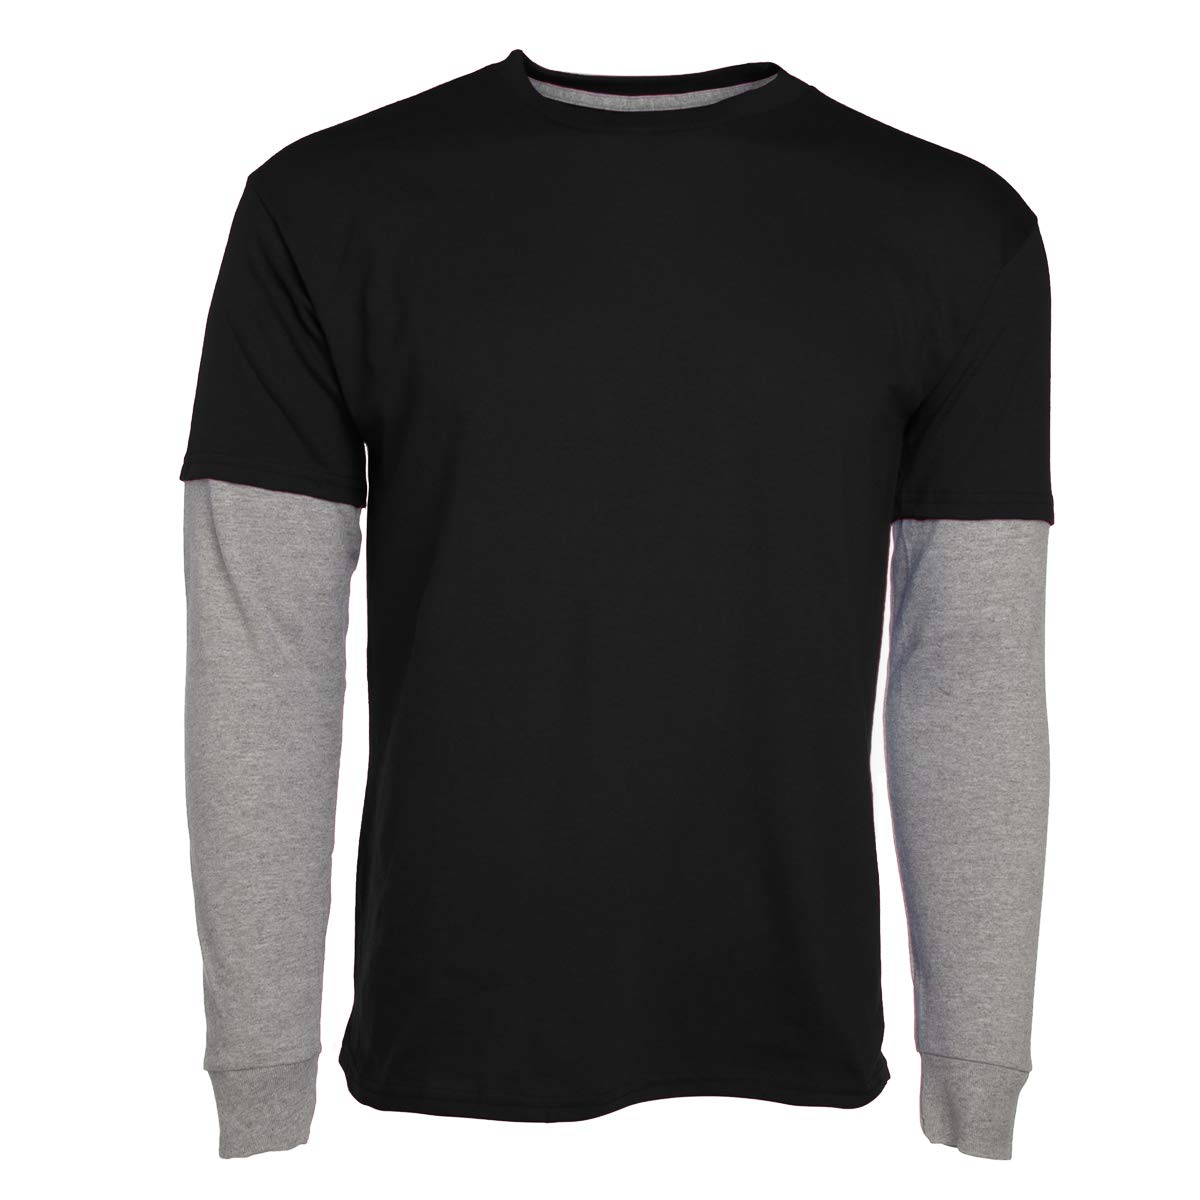 24c5d9ae Hanes Boys Breathable Cotton Layered Long Sleeve T Shirts Kids ...